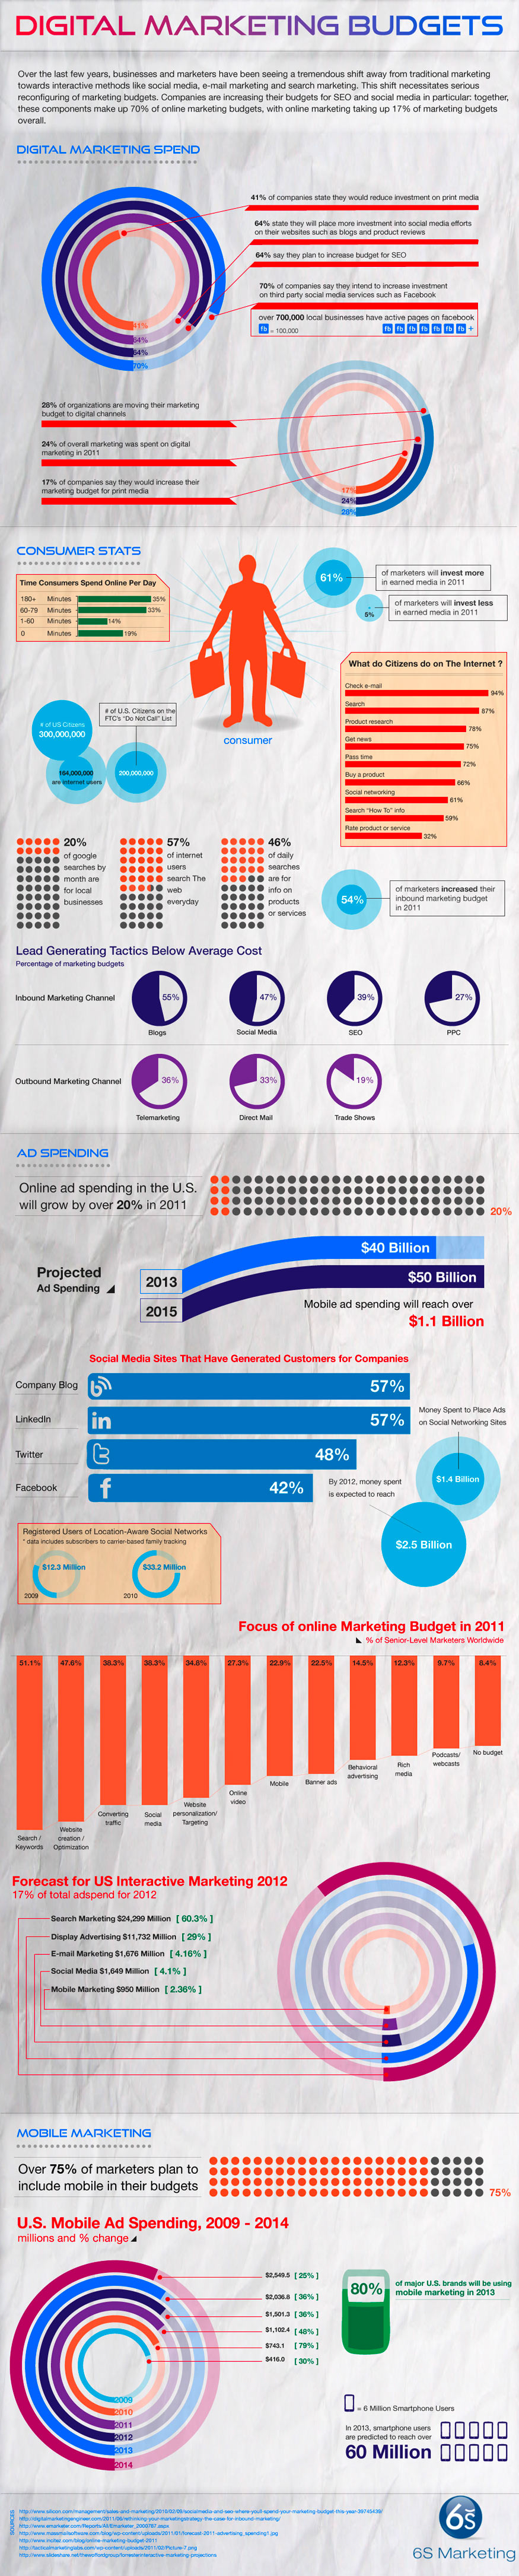 digital marketing budget trends 2012